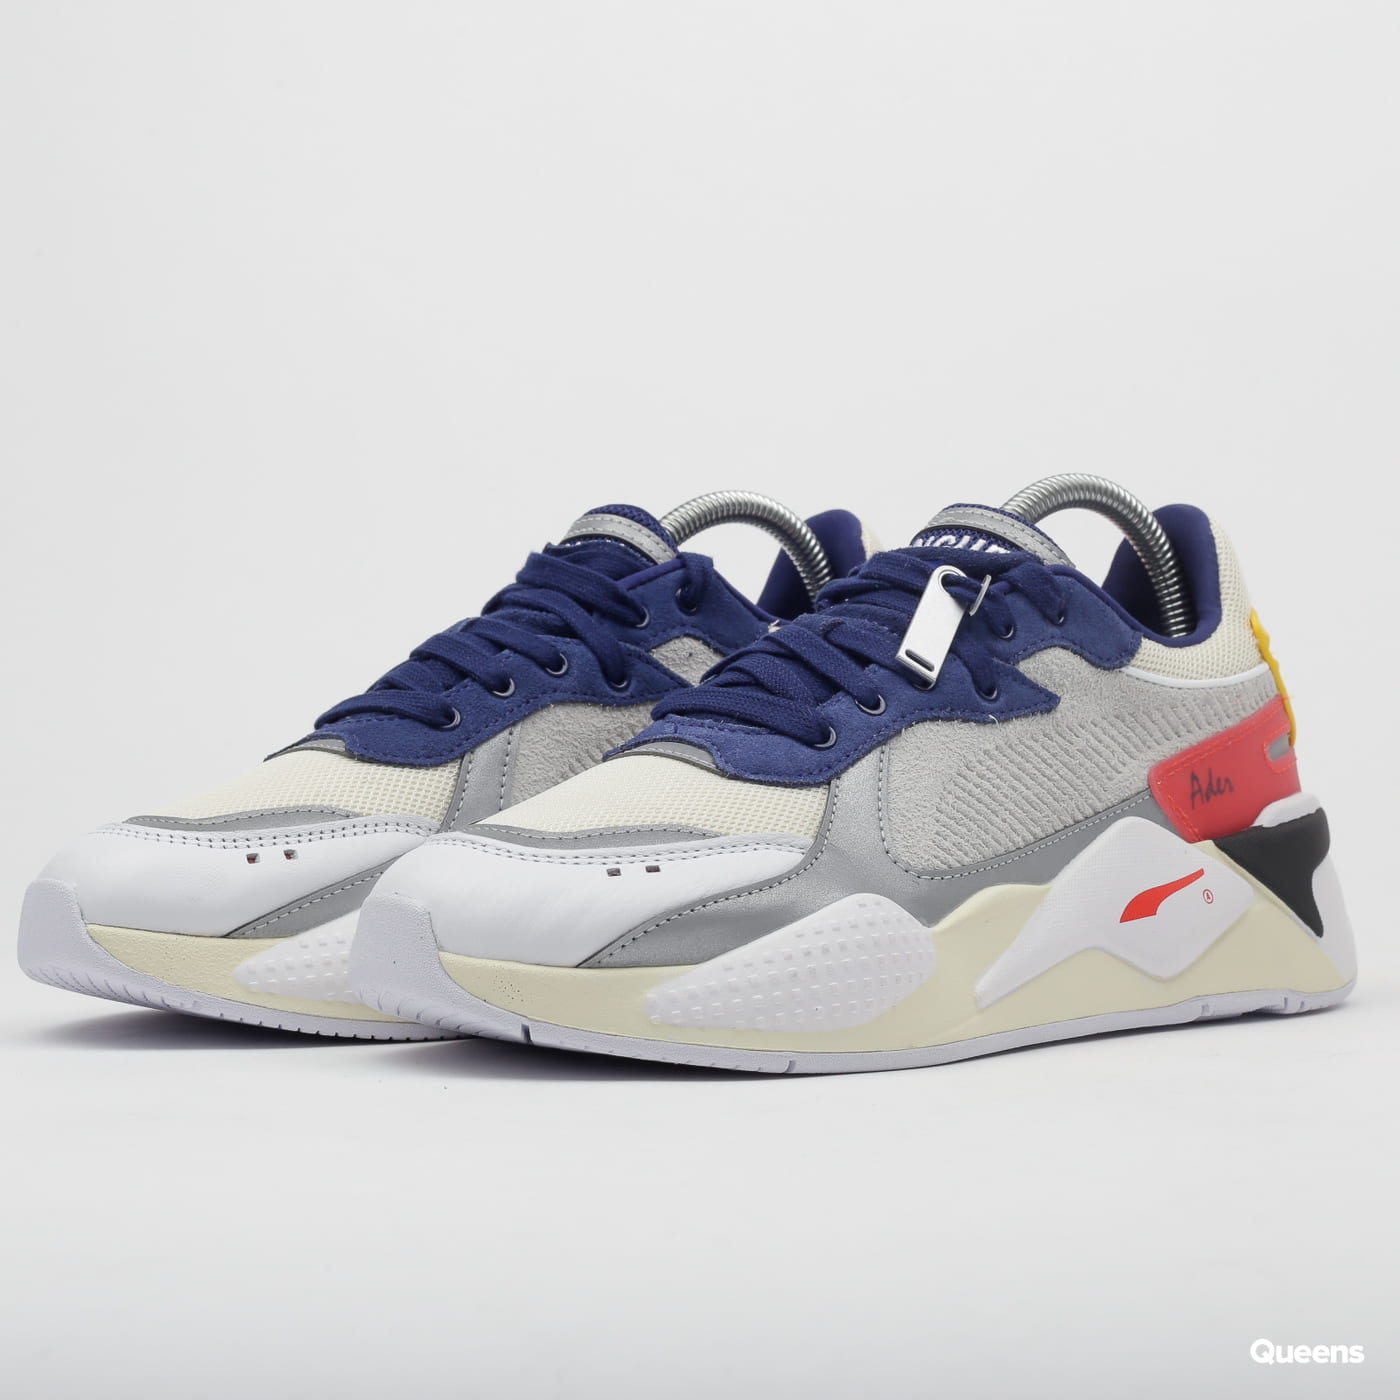 fd4e6c4c2 Sneakers Puma RS-X Ader Error whisper white - blueprint - red (369538 01) –  Queens 💚